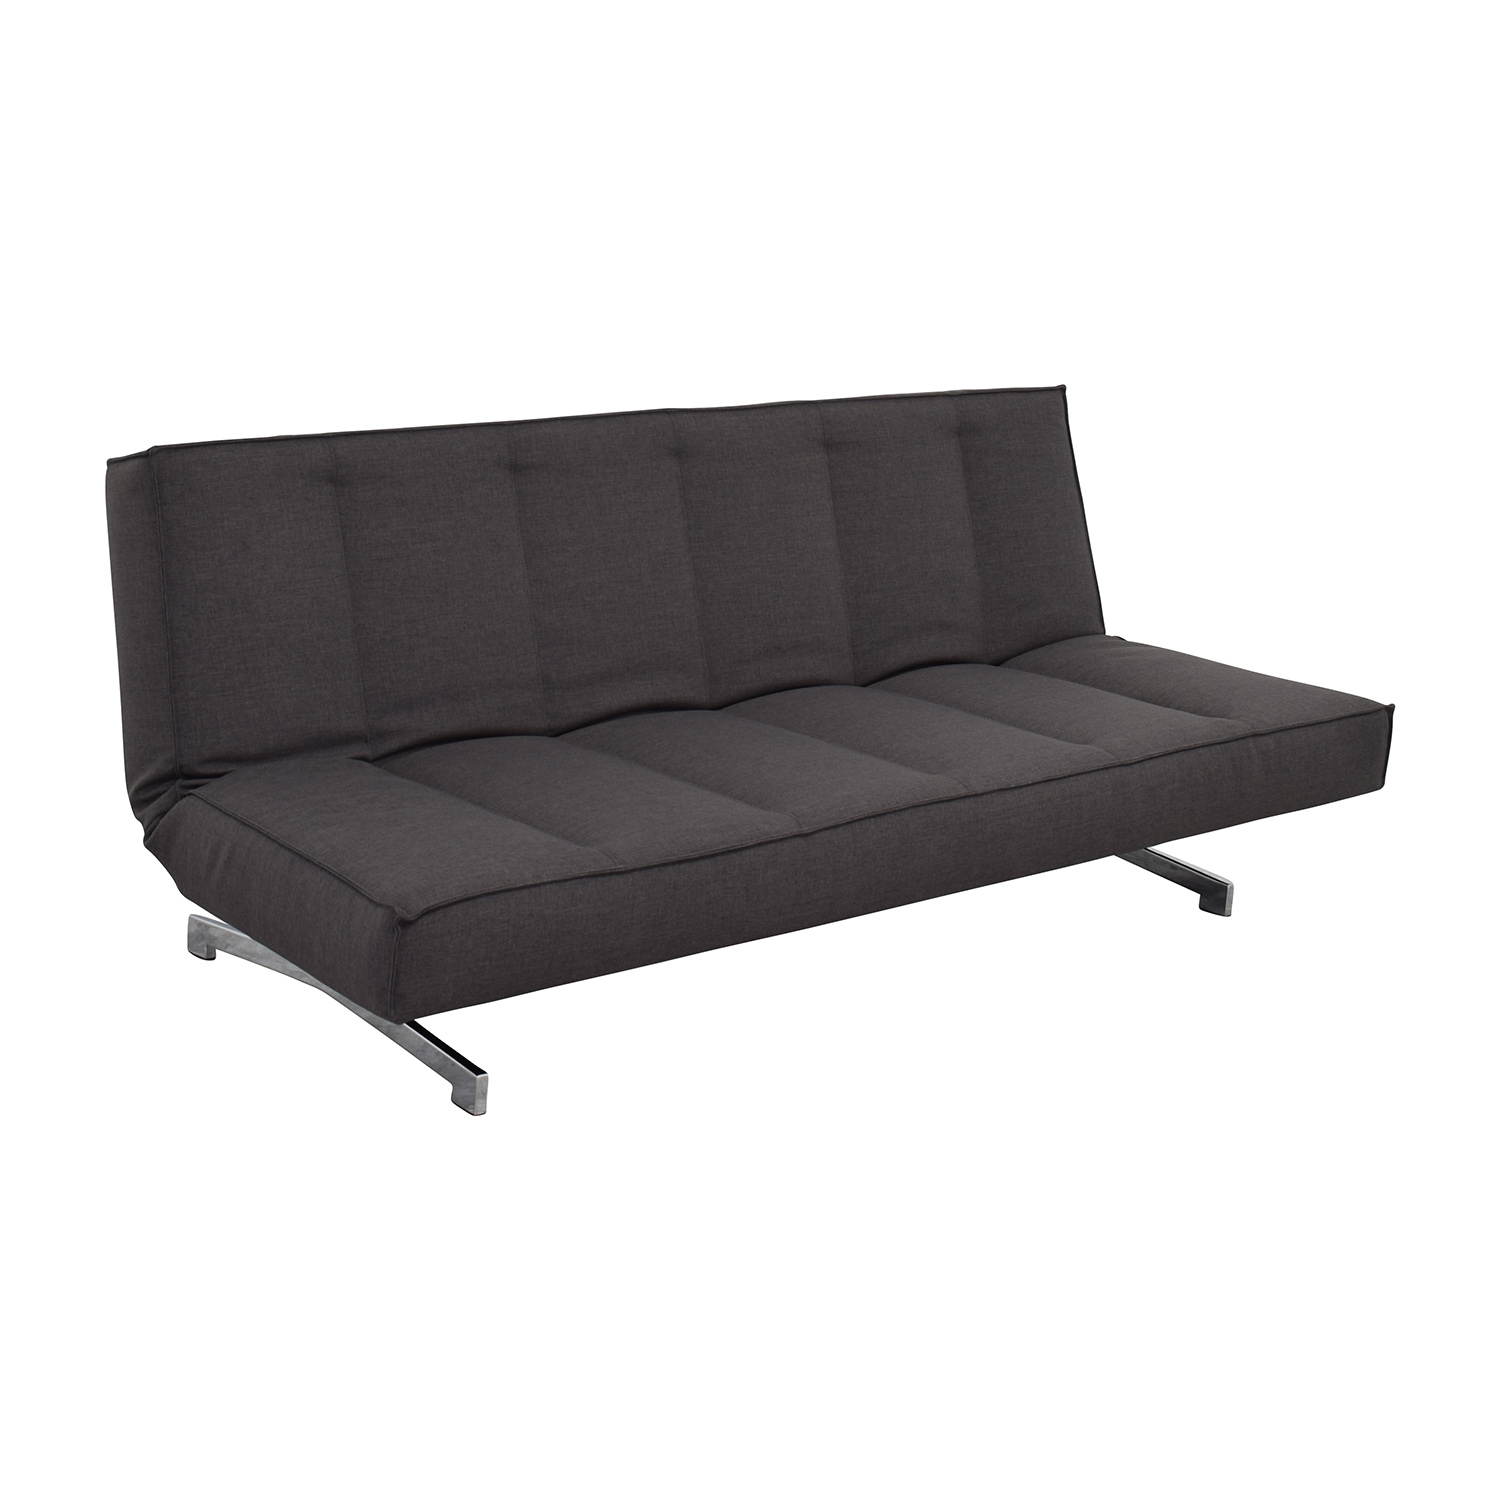 42 off cb2 cb2 flex gravel sleeper sofa sofas